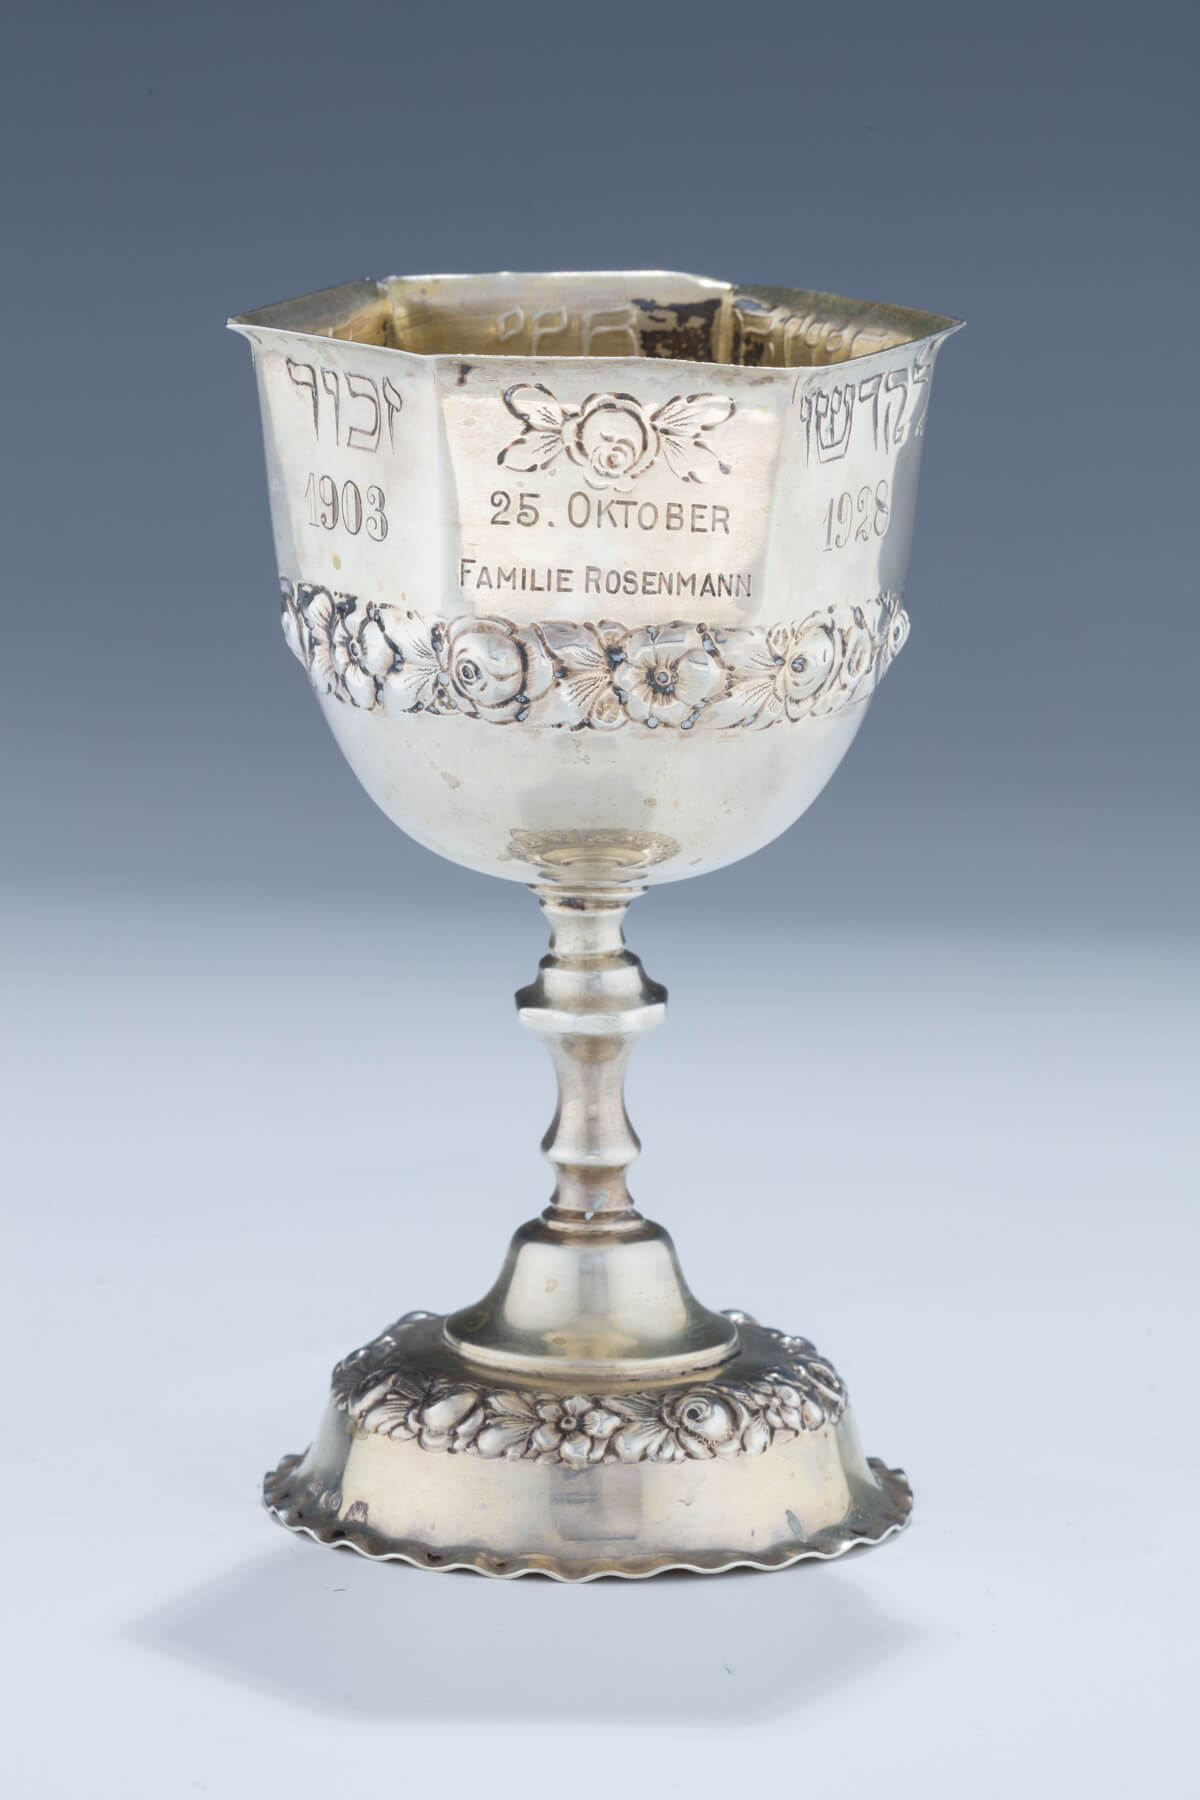 088. A Large Silver Kiddush Goblet